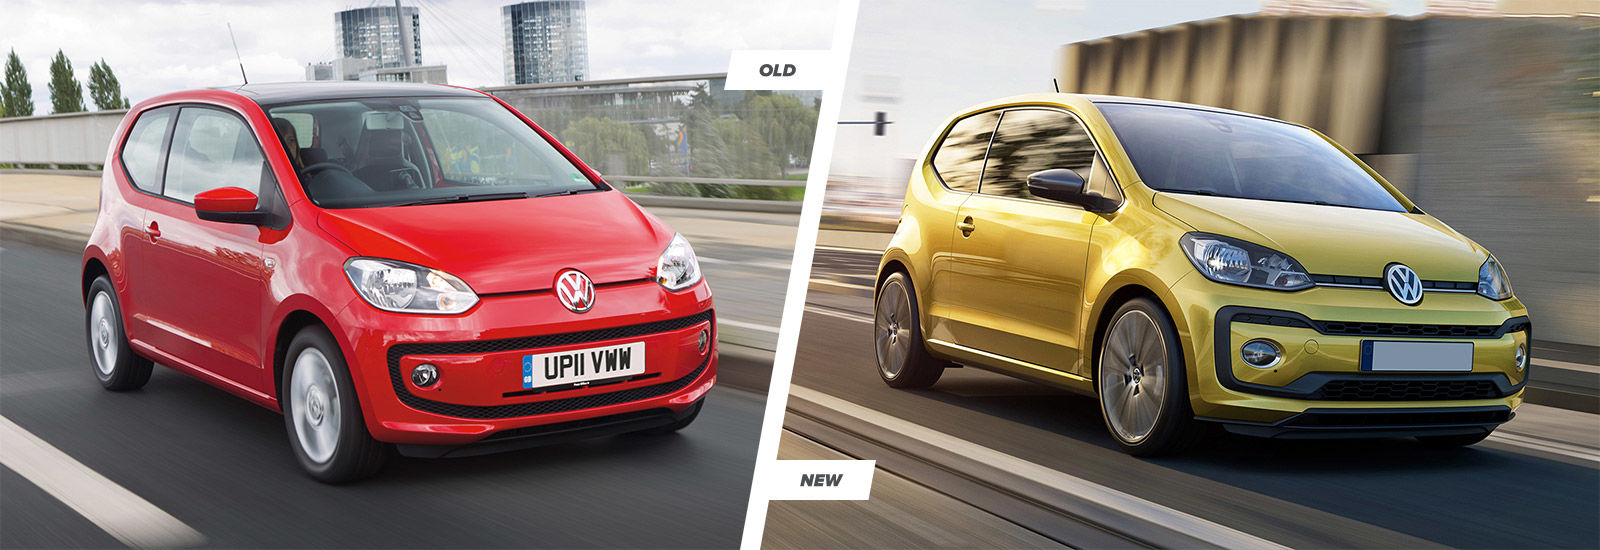 Volkswagen Up facelift: old vs new compared | carwow